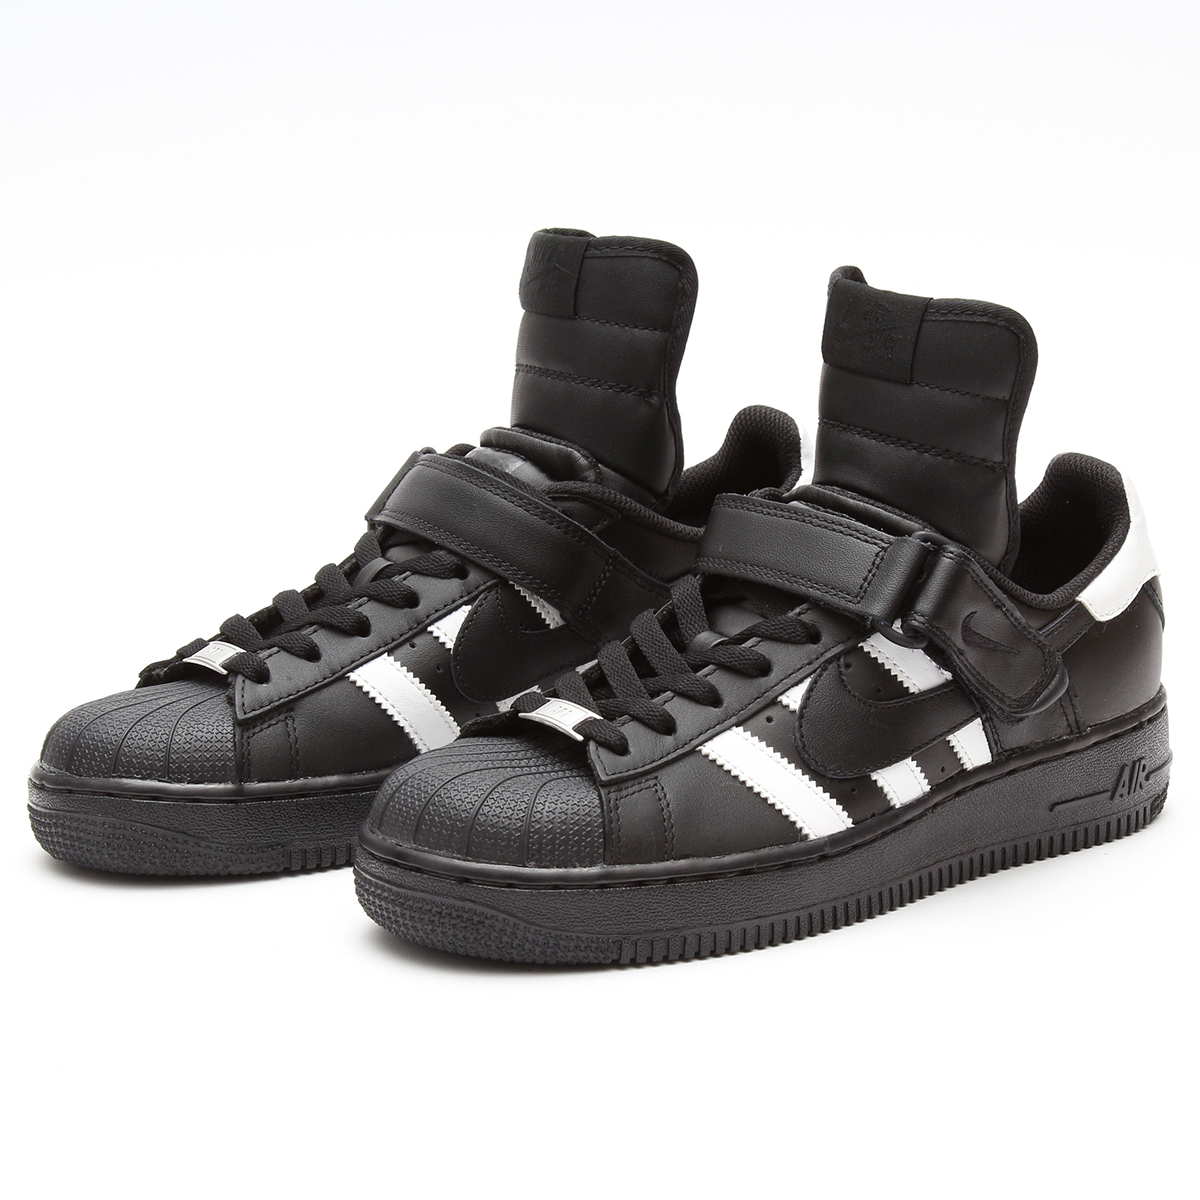 Superstar 1 Incorporation Code Sneakers Air Mid nike Force Adidas × tQdhrxCs